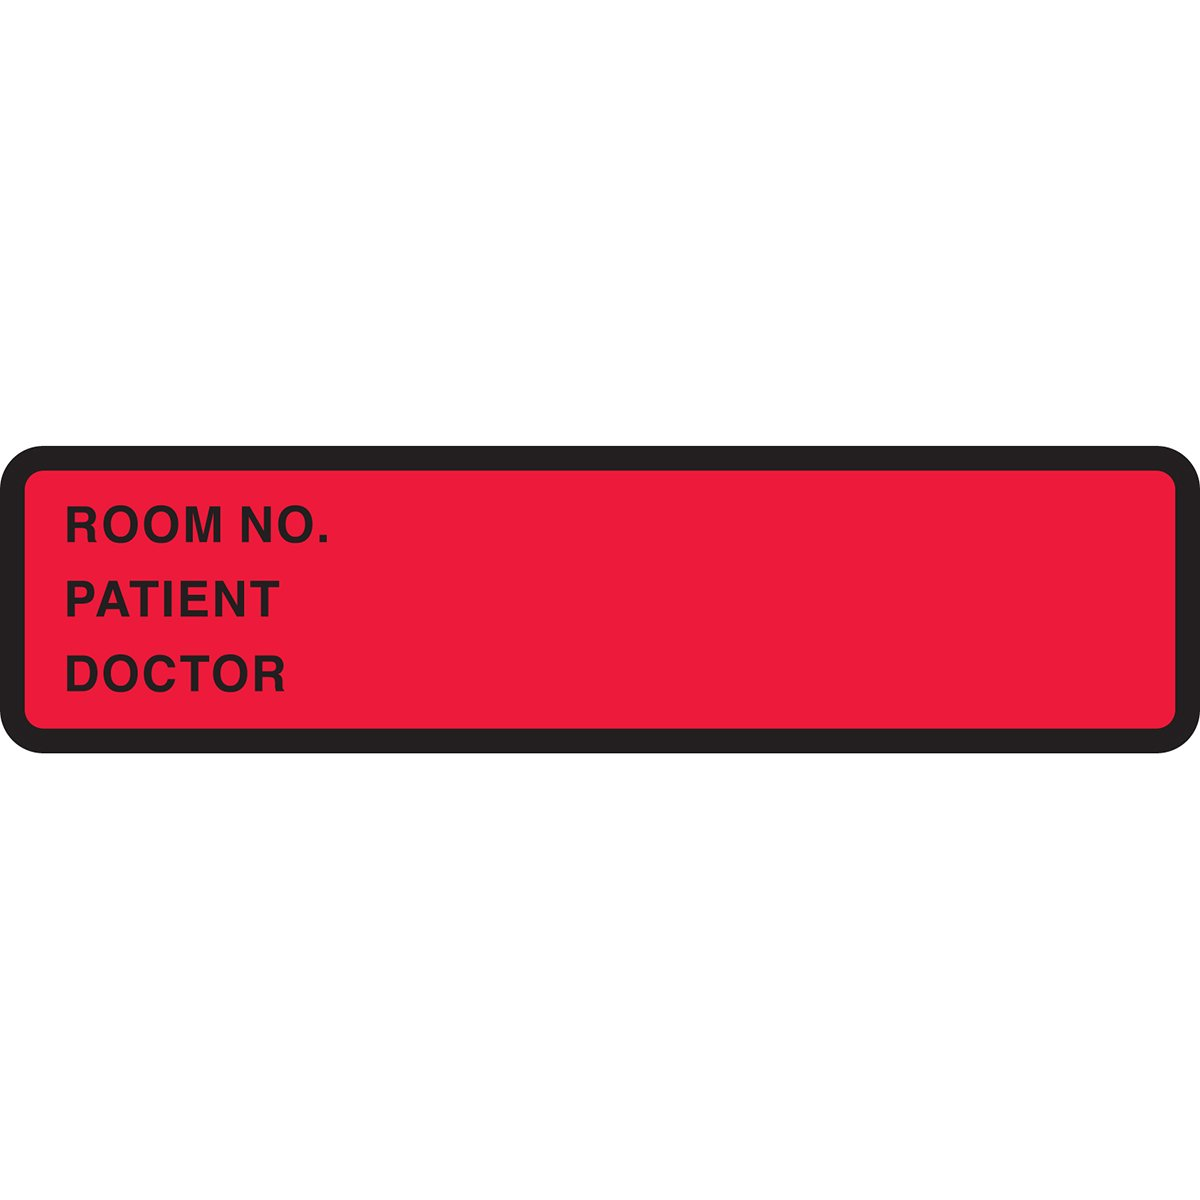 PDC Healthcare 59704802 Binder/Chart Label Paper, Removable Room No. Patient, 5 3/8 x 1 3/8, Red (Pack of 500)